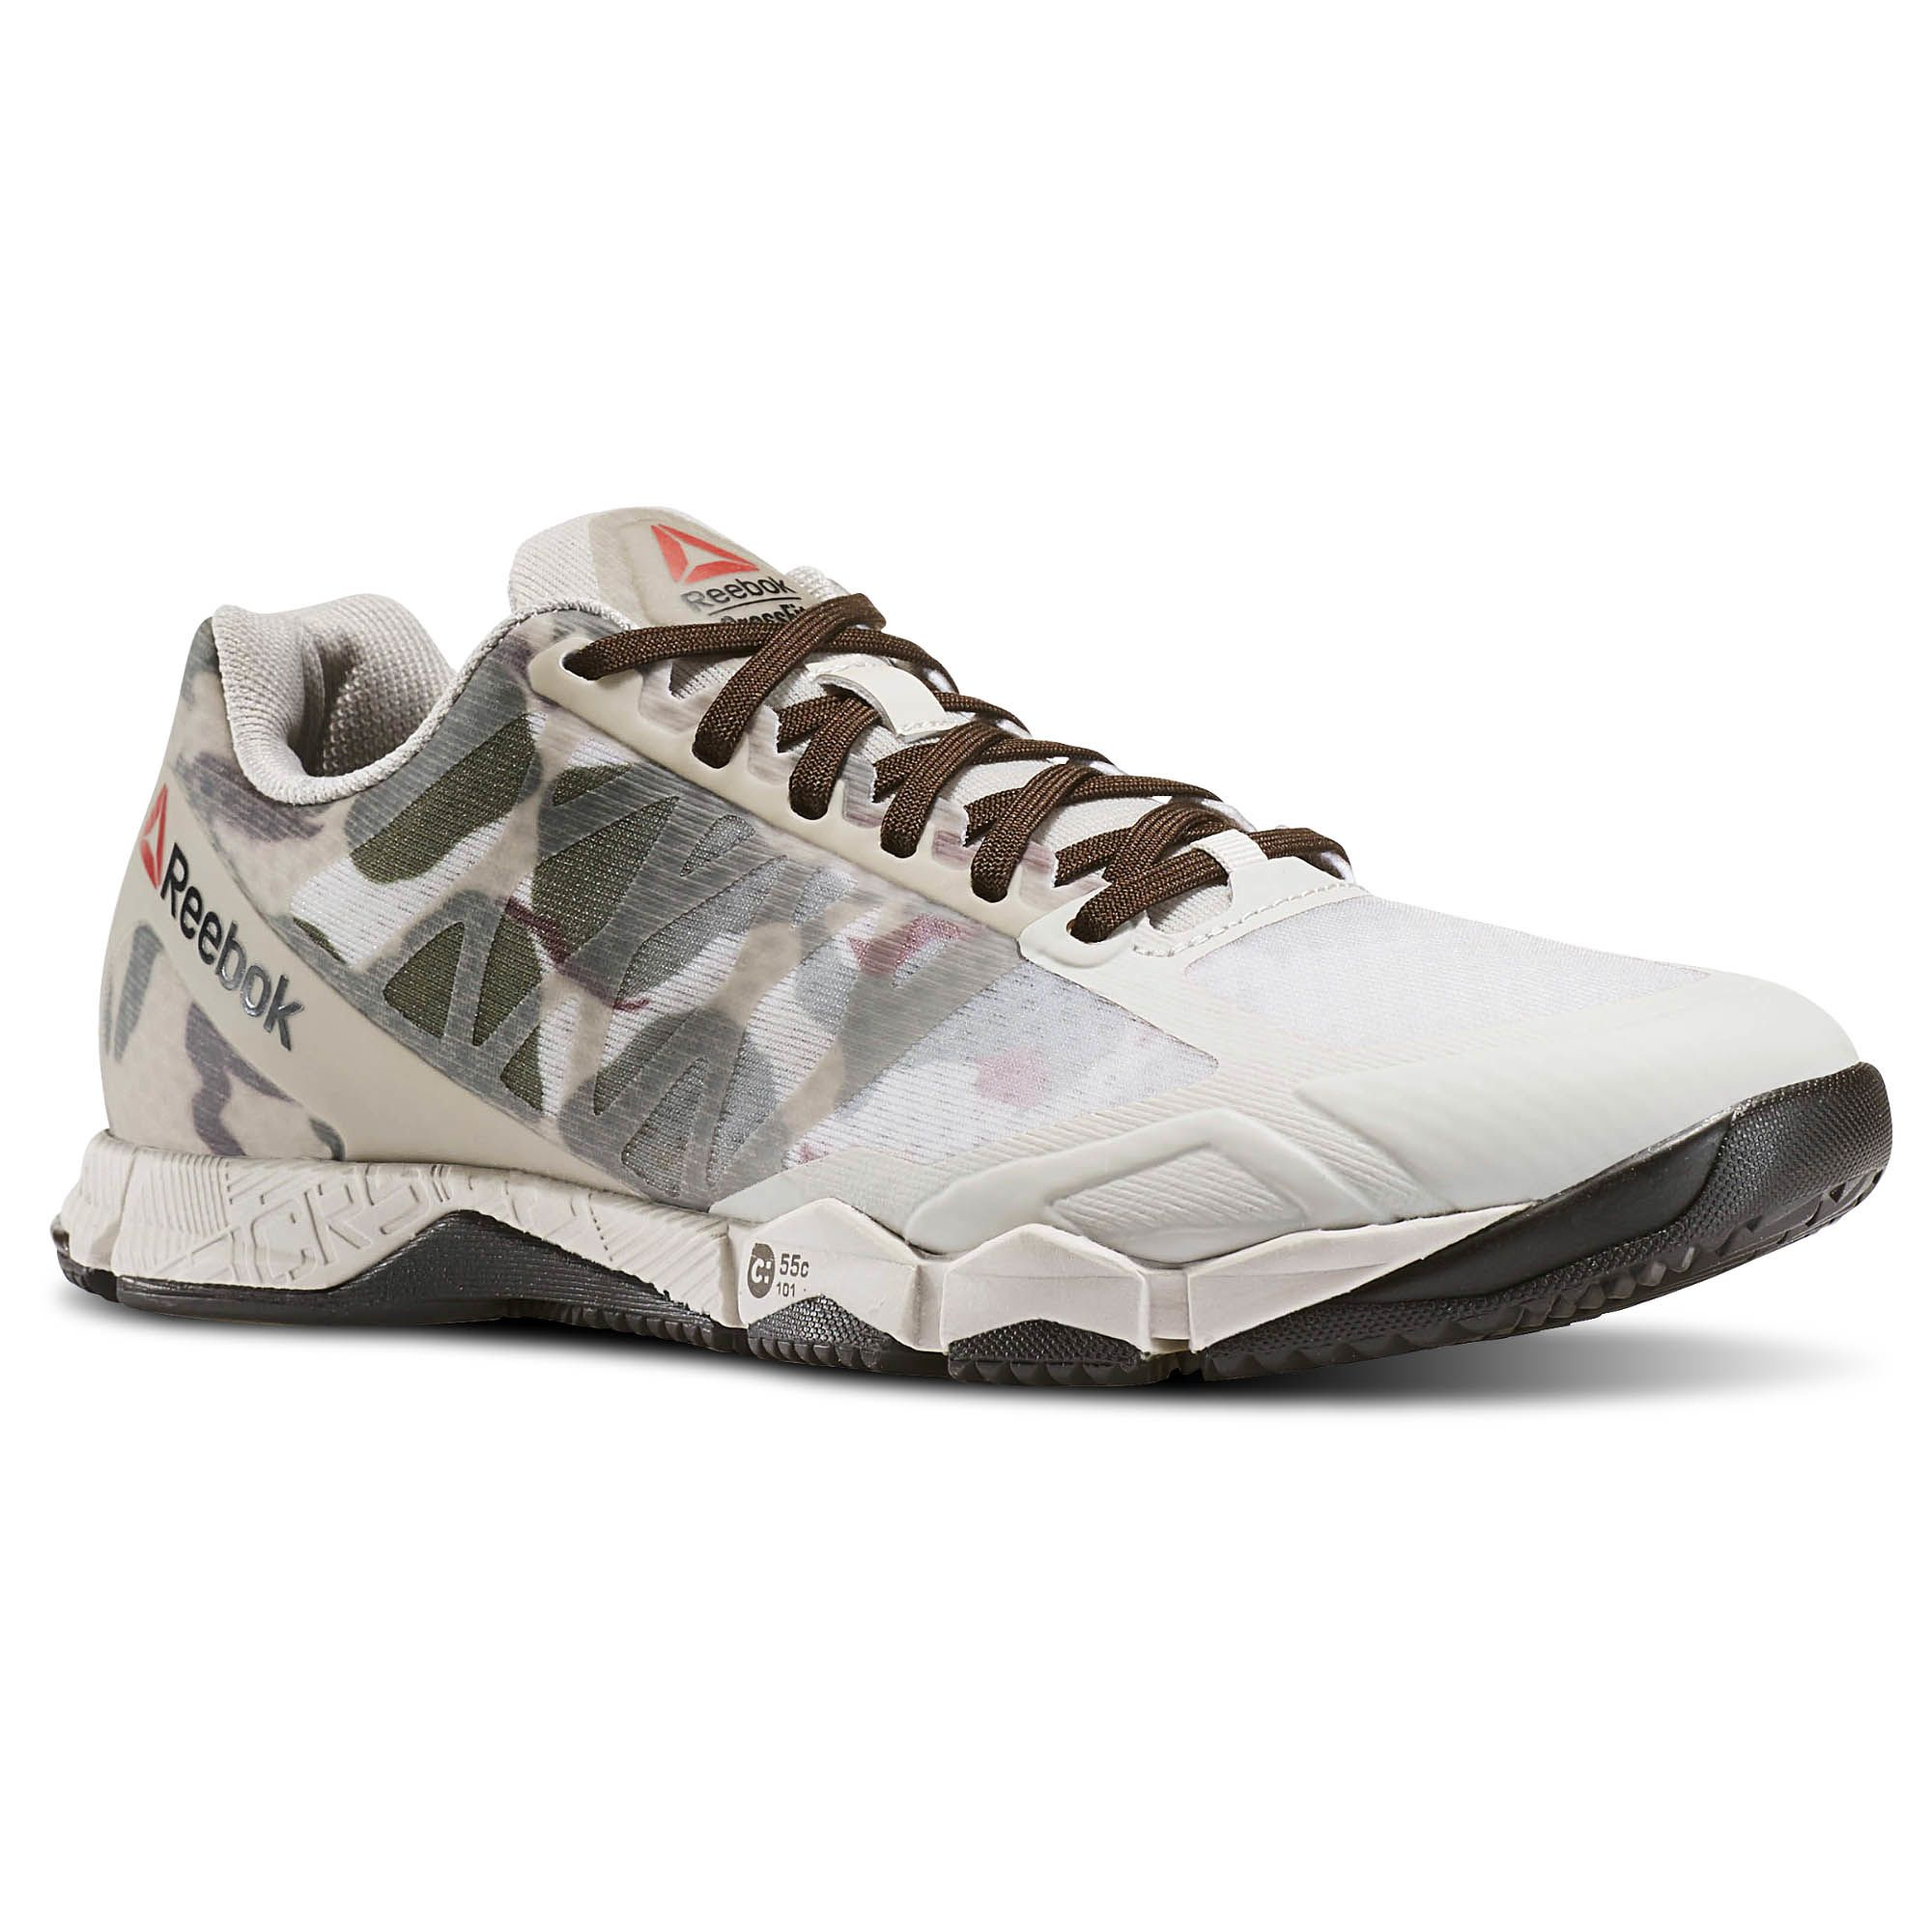 reebok womens tennis shoes